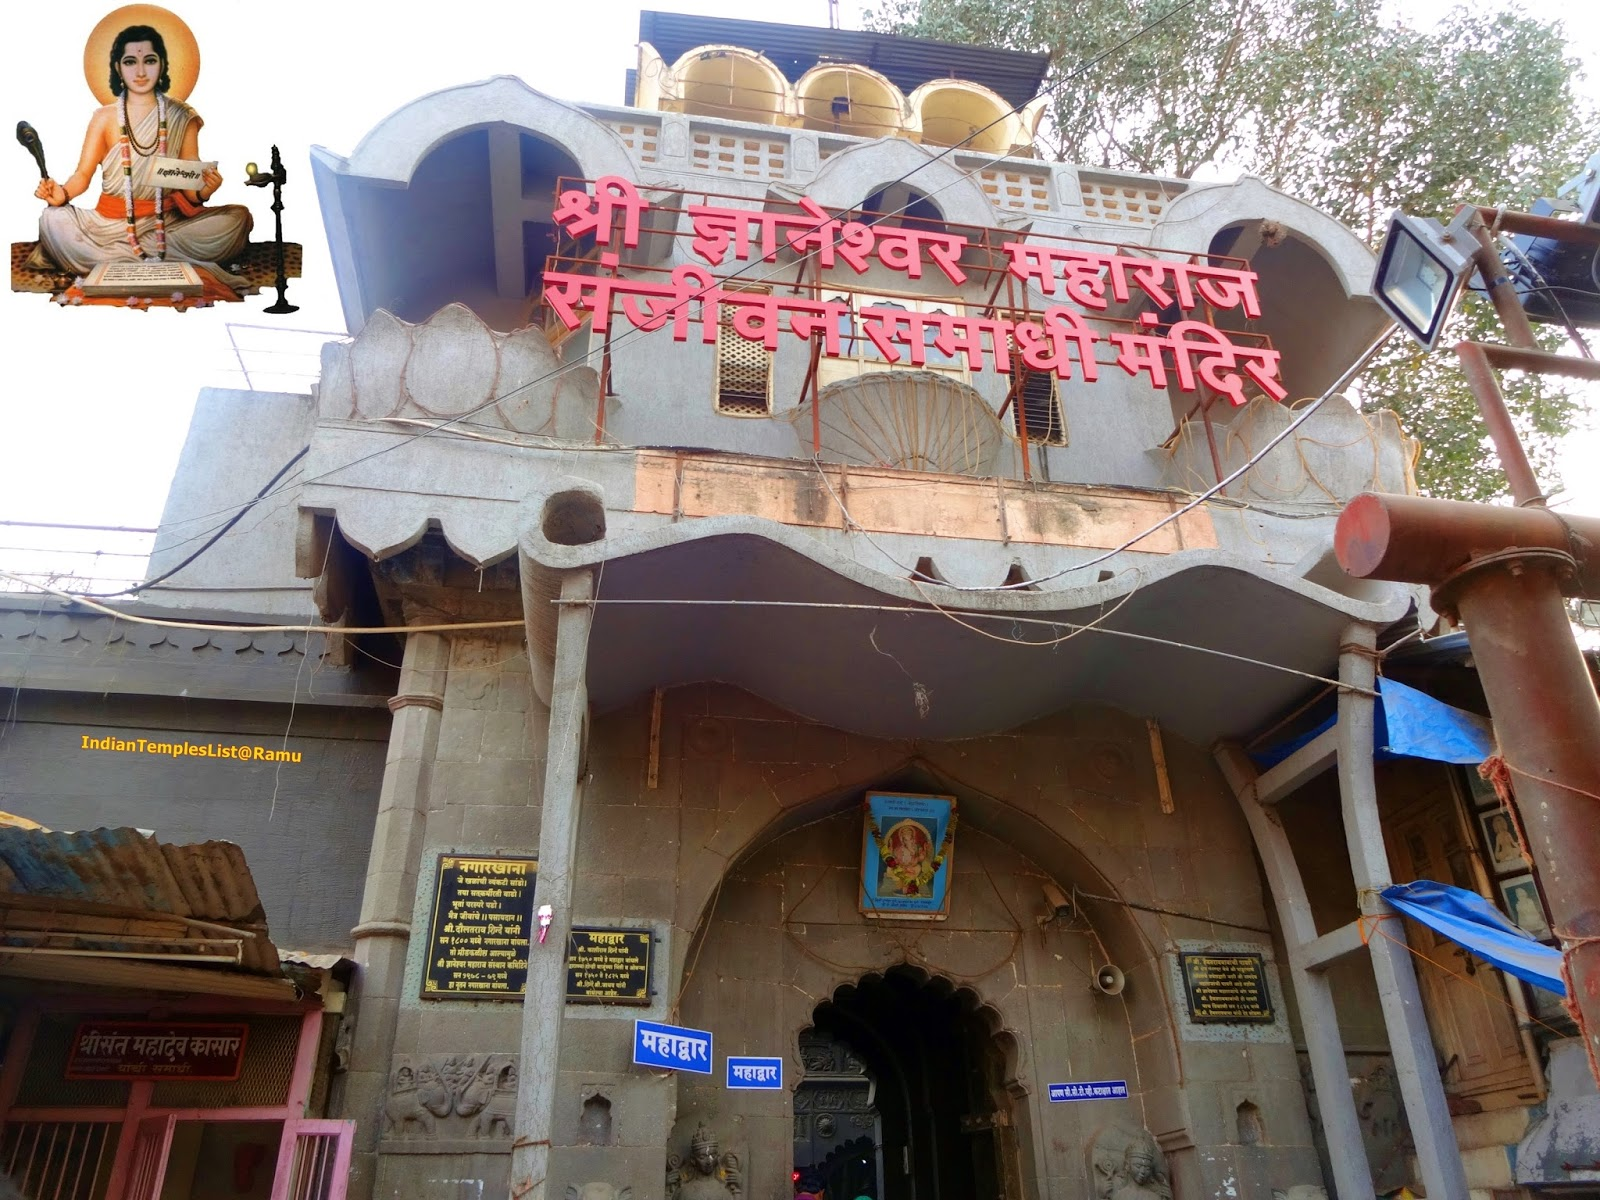 Shree Dnyaneshwar Maharaj Samadhi Mandir in Alandi - Indian Temples List